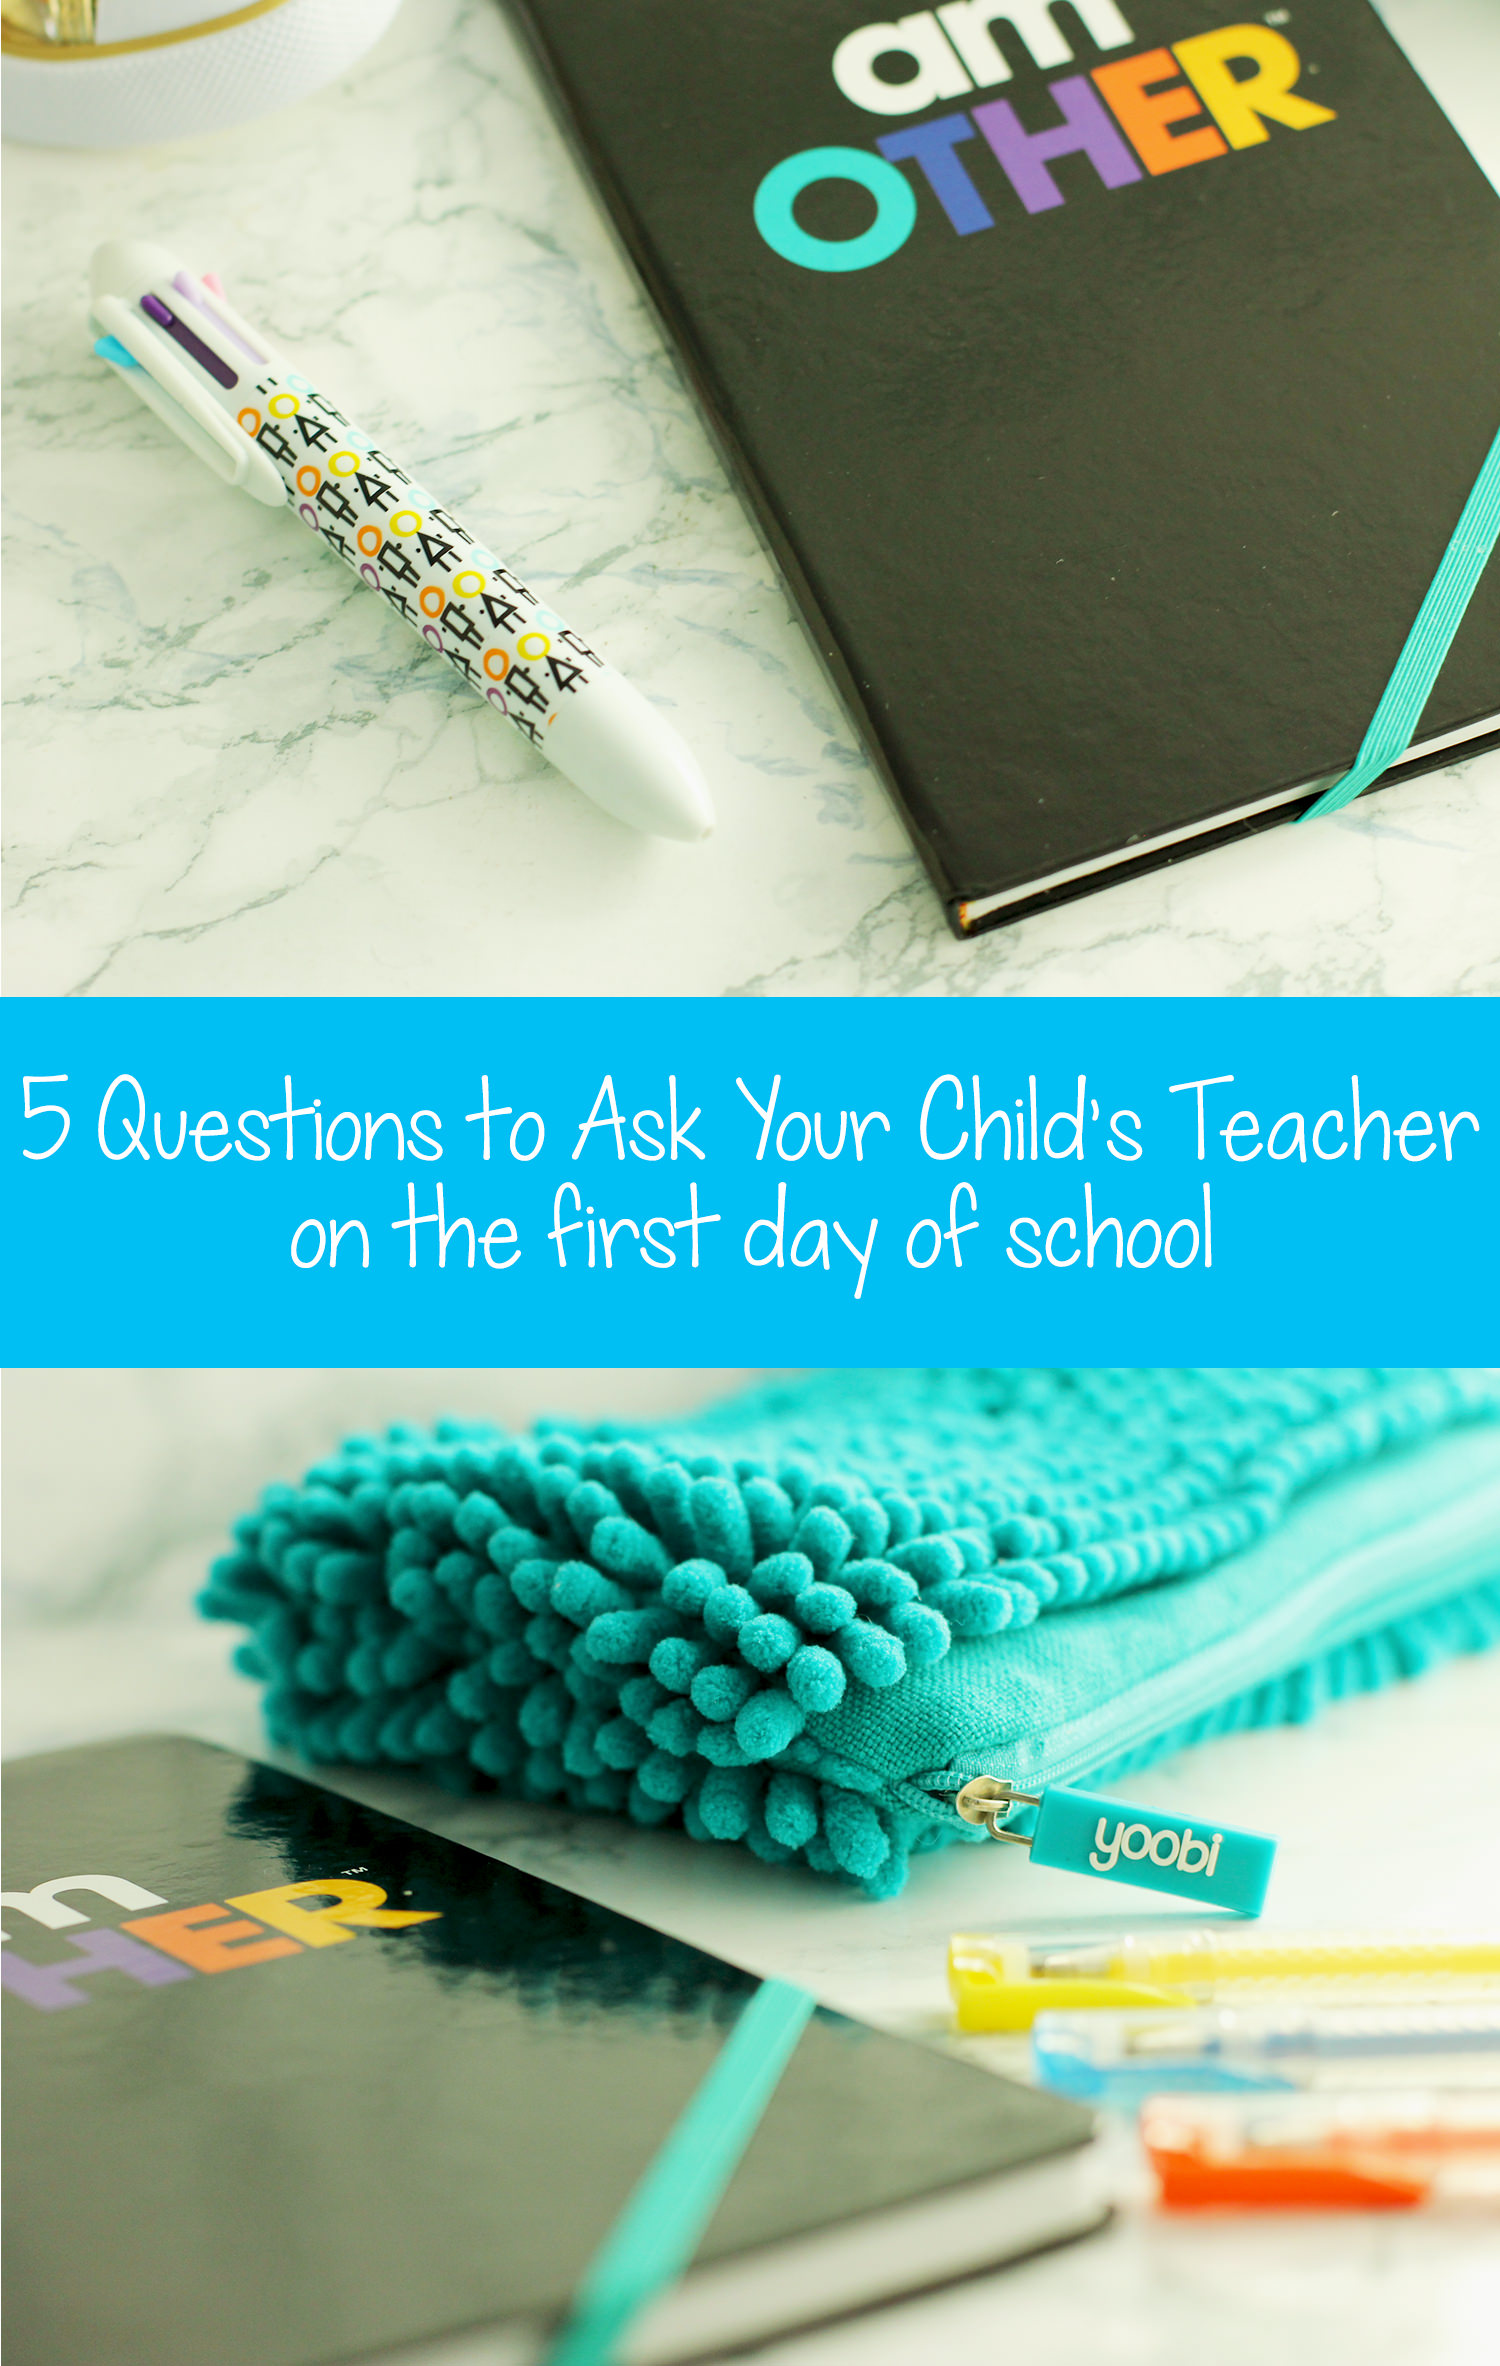 Gearing up for the start of the school year? These are 5 things you should ask your child's teacher on the first day of school!